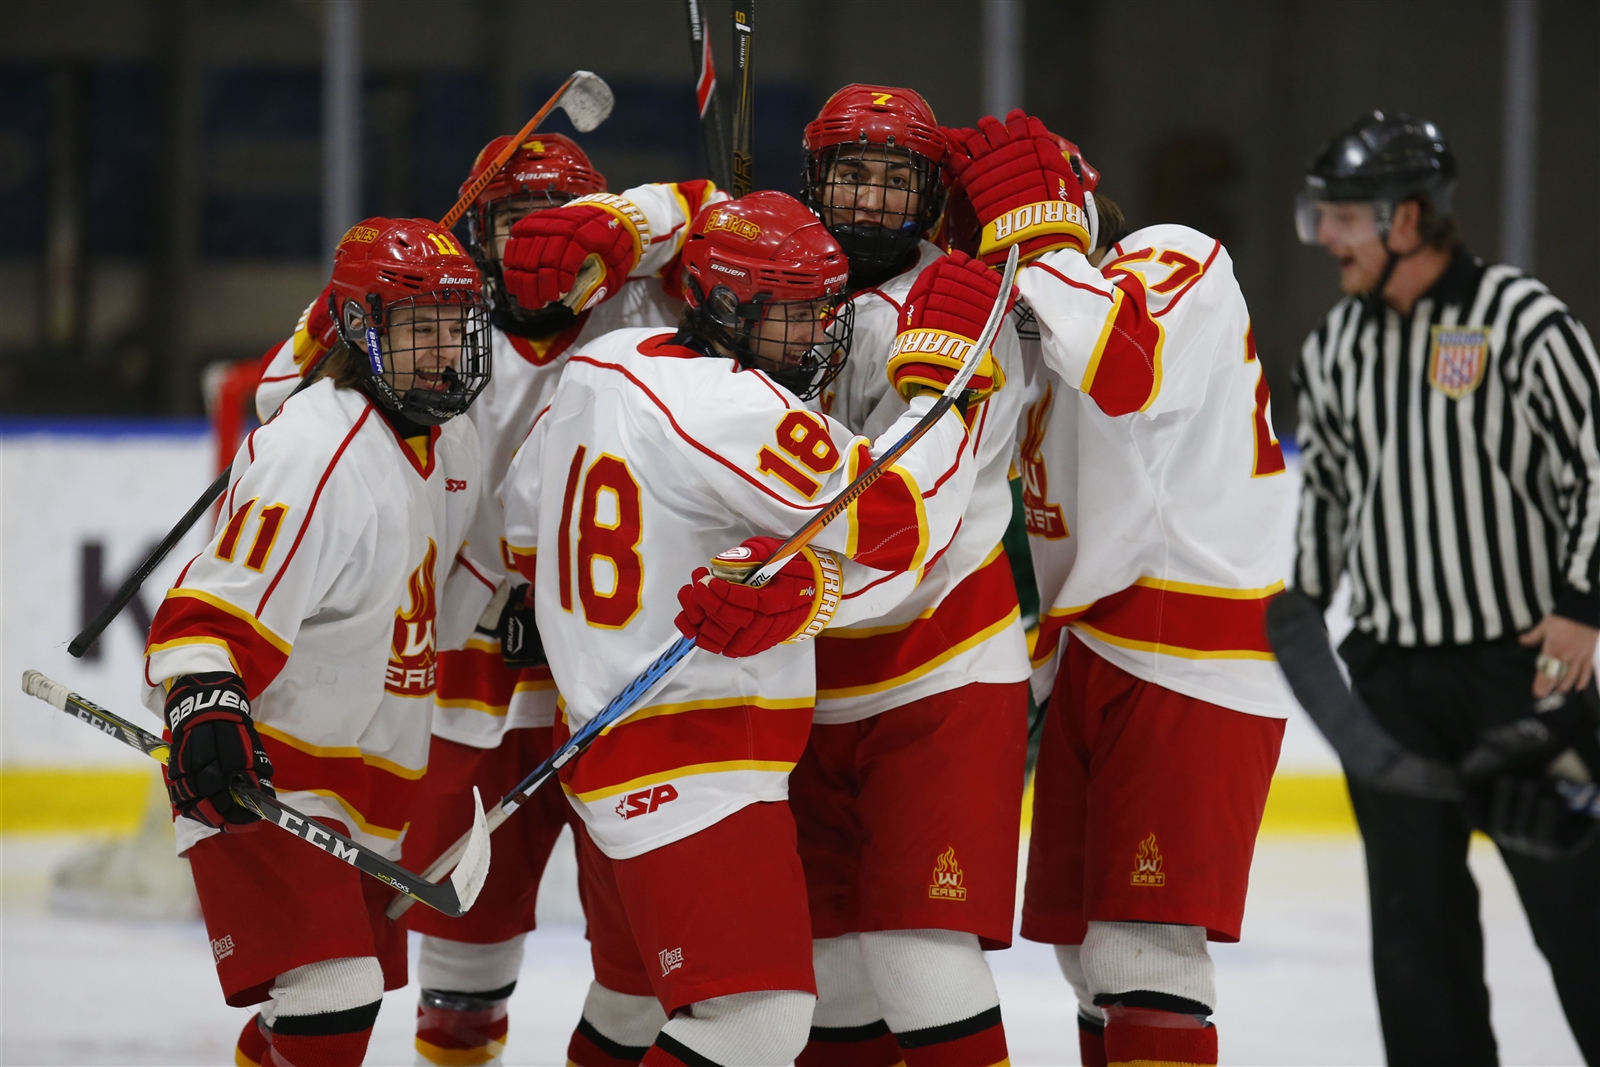 Williamsville East's Jack Kelly (18) is congratulated on his second goal of the game against West Seneca East during first period action.